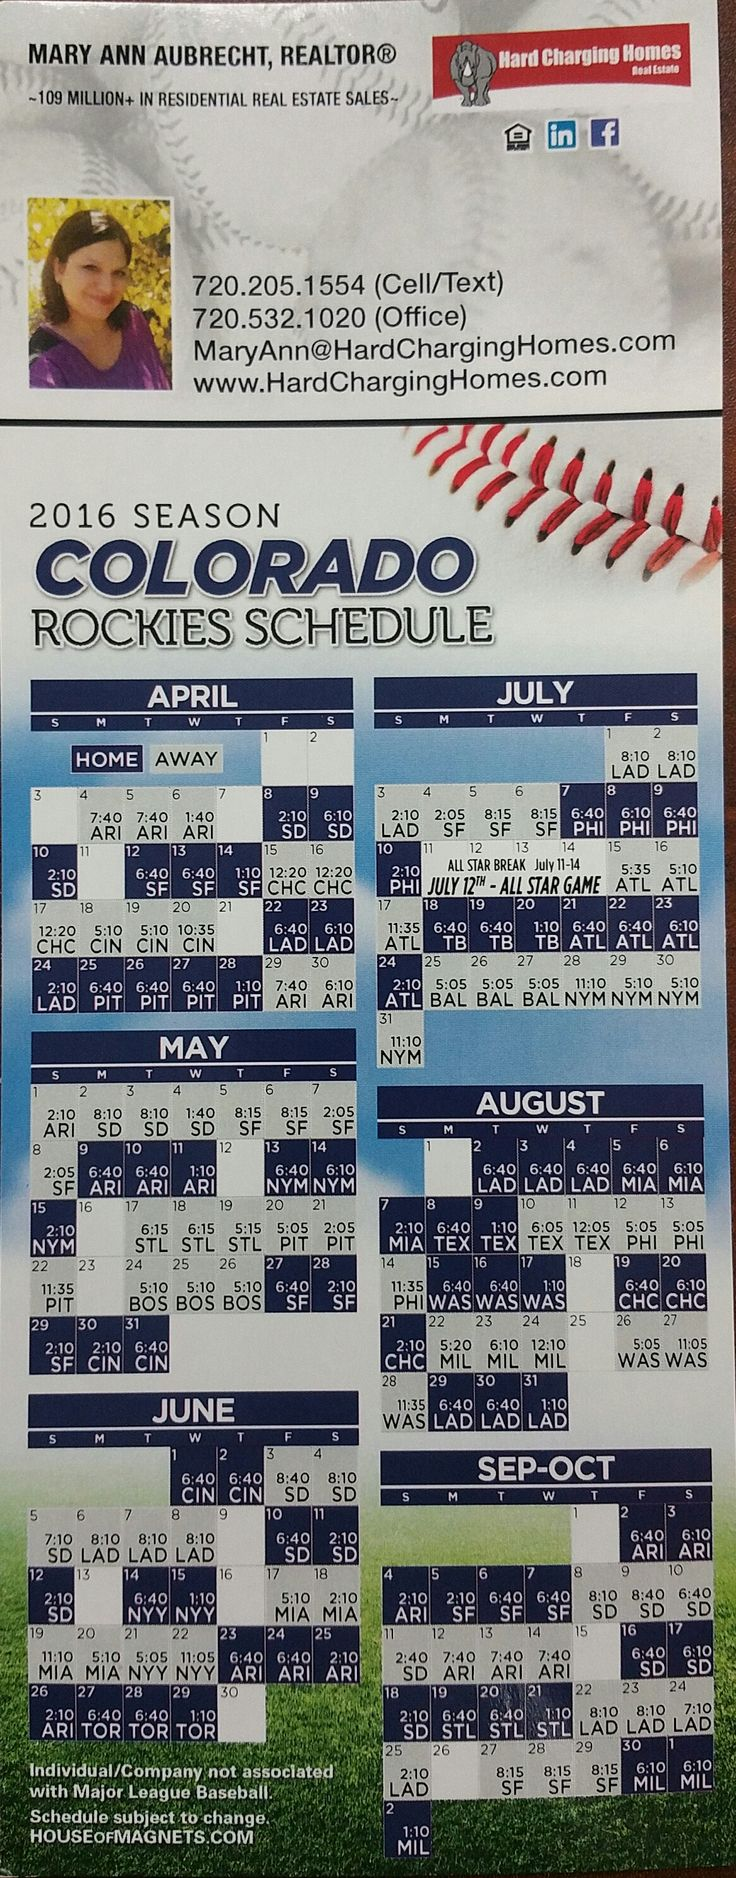 Colorado Rockies Schedule 2016